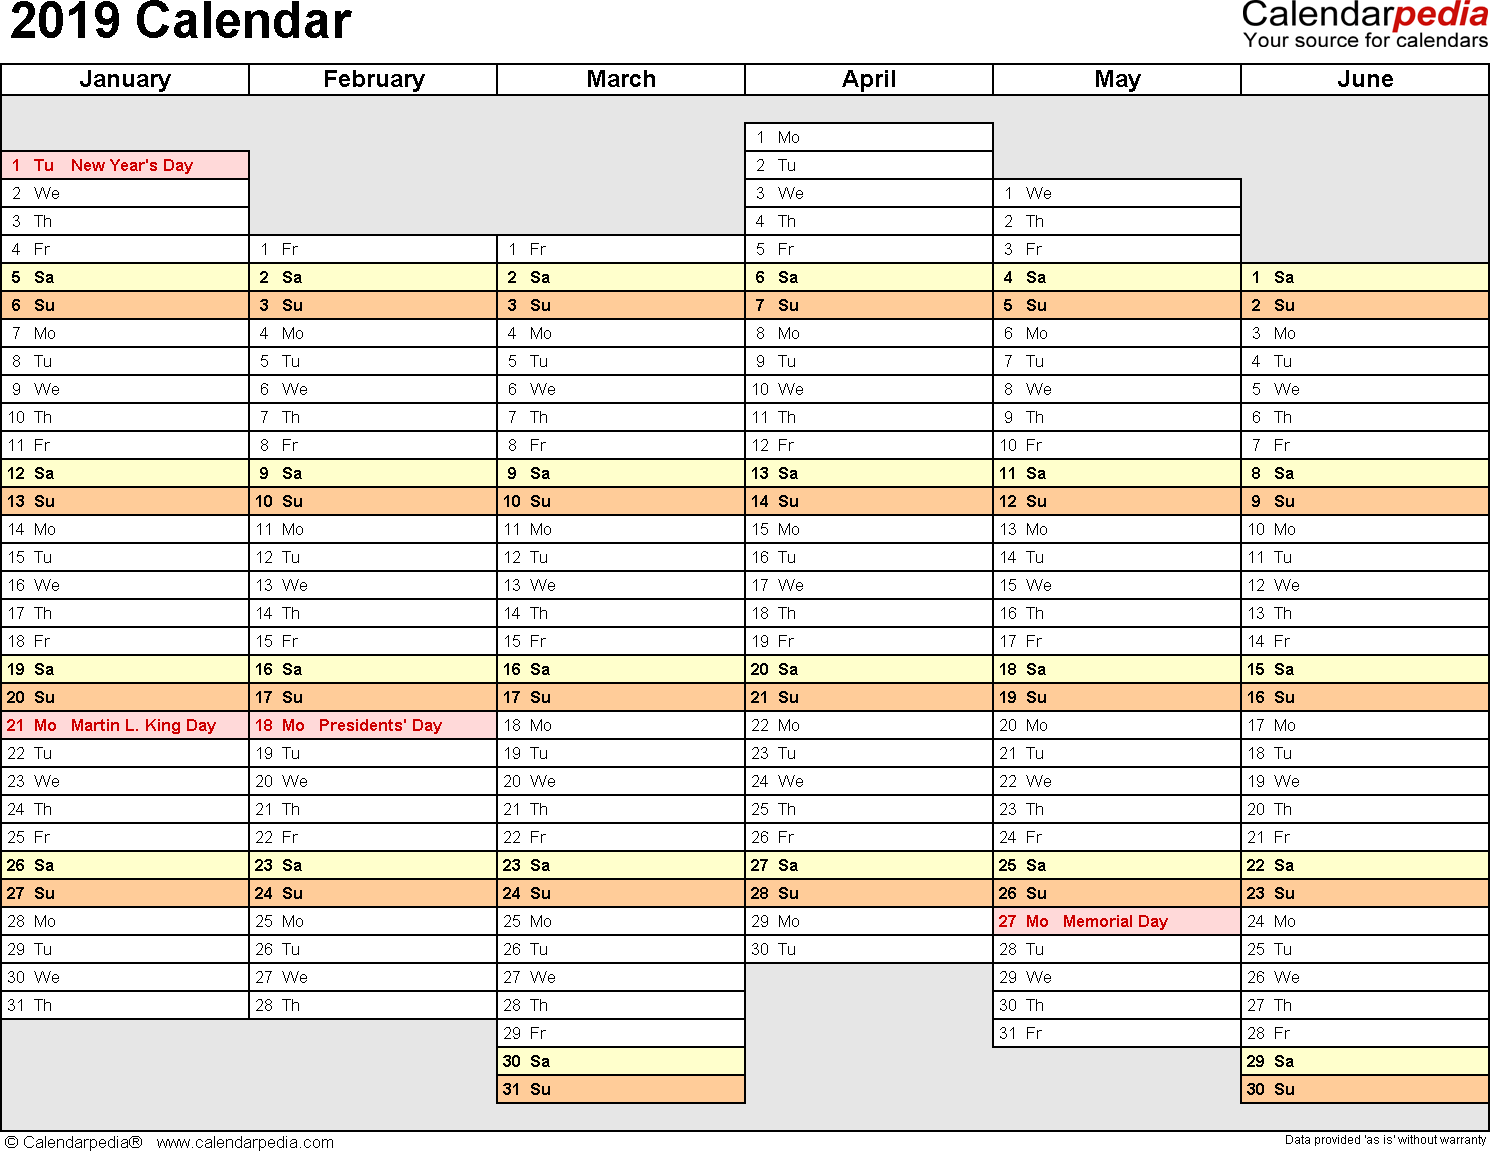 Template 4: 2019 Calendar for PDF, months horizontally, 2 pages, days of the week in line/linear, landscape orientation